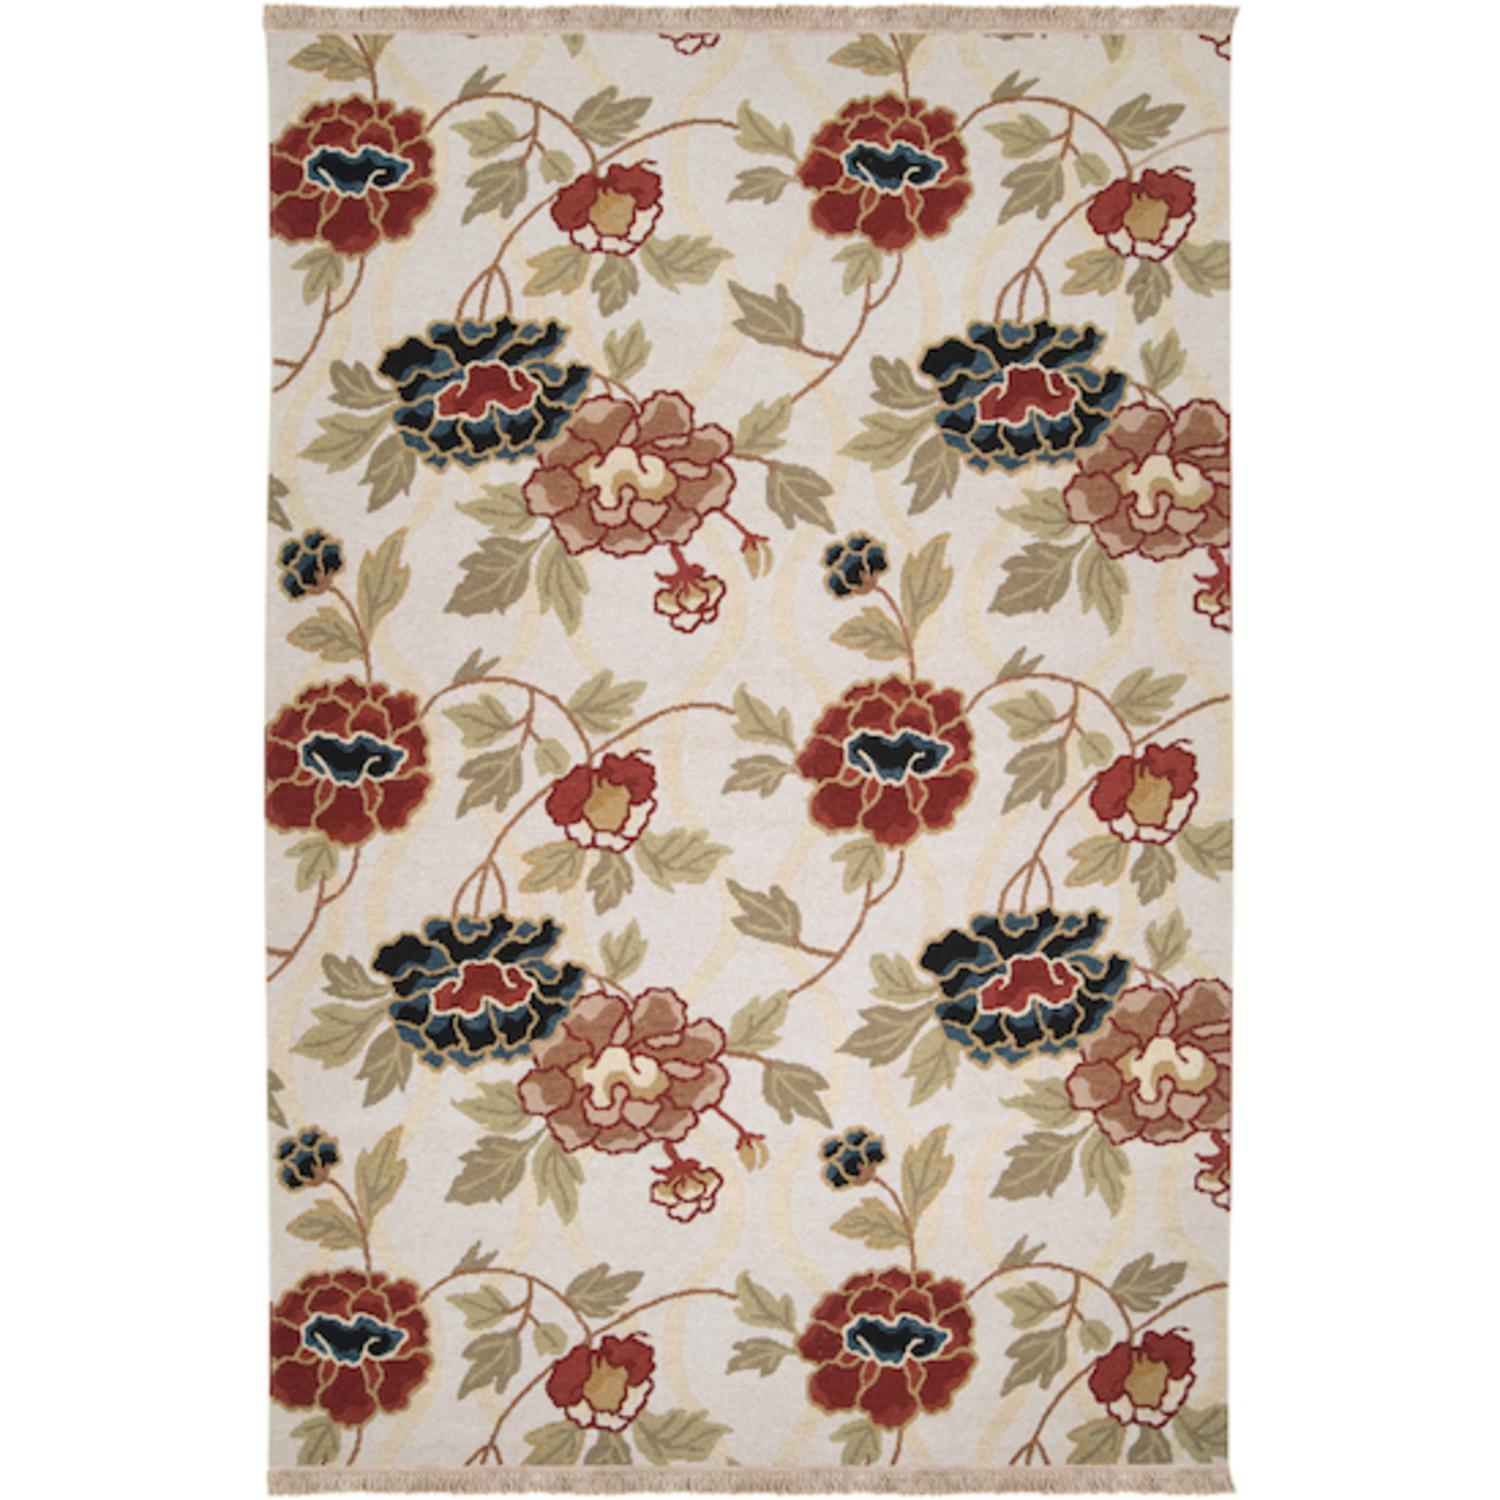 2' x 3' Heirloom Bouquet Fringed Khaki Floral Wool Area Throw Rug